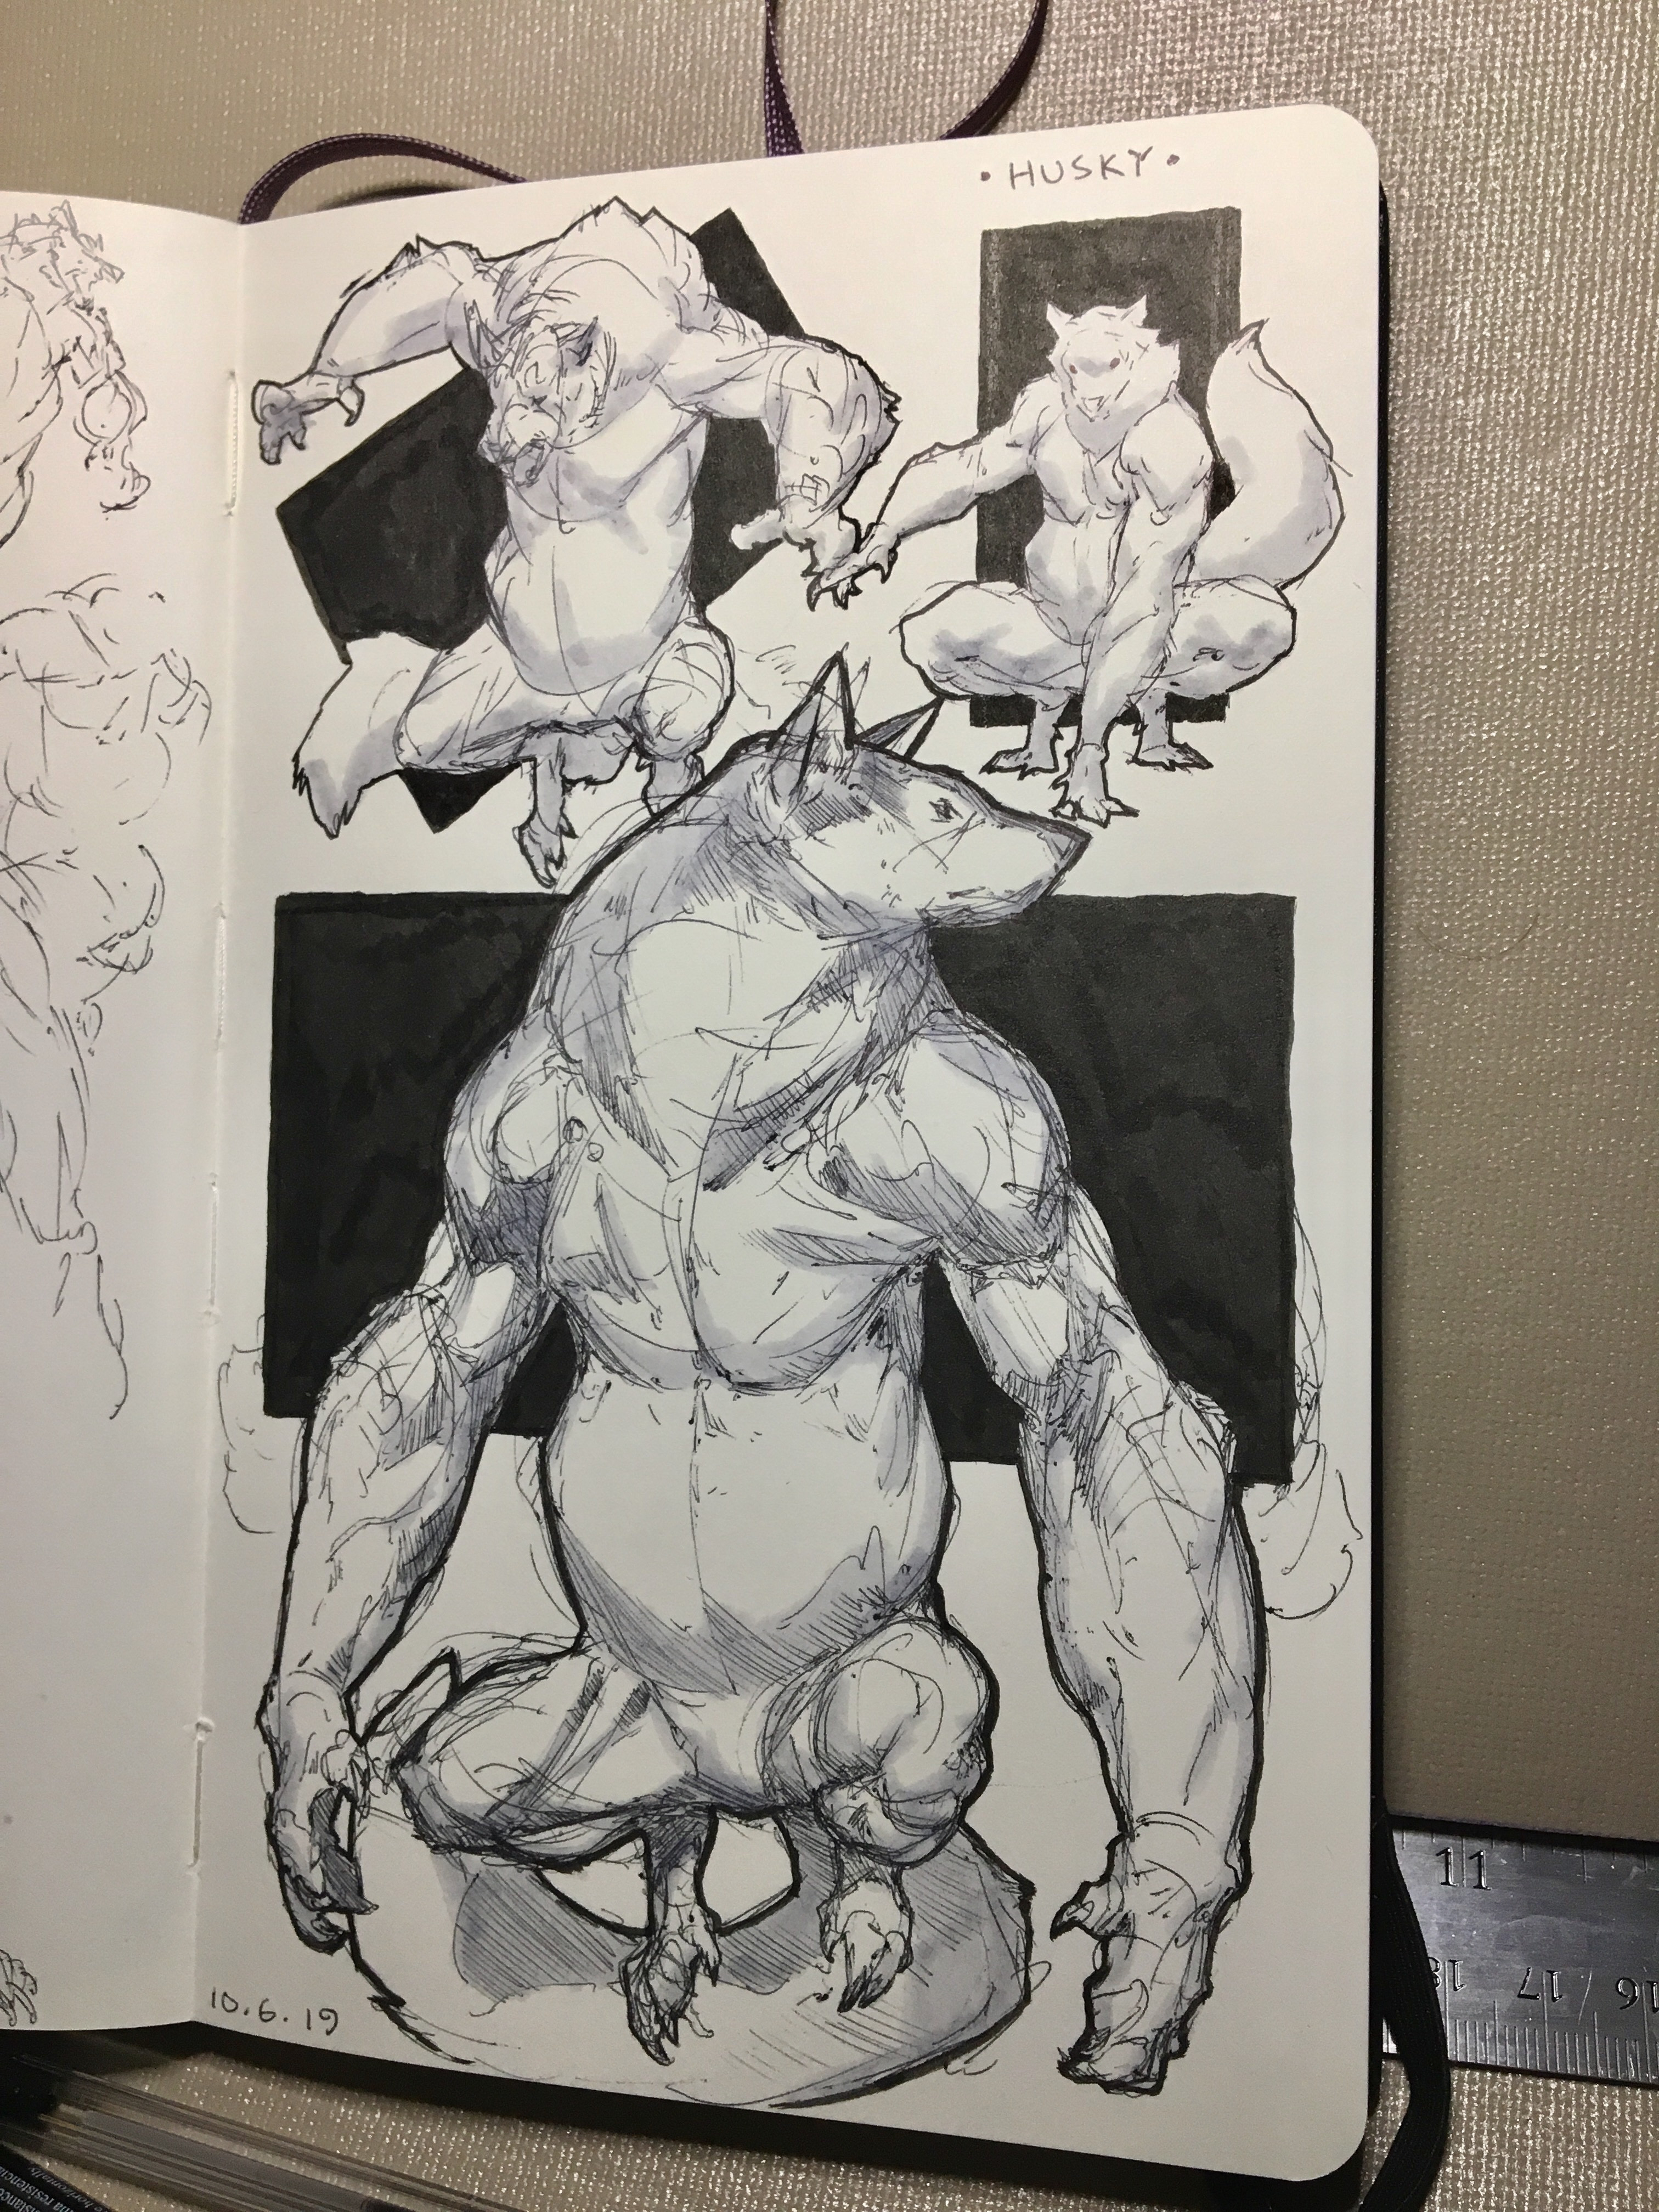 Day 6 of inktober 2019! Husky! Some husky, husky werewolves! Had a lot of fun playing around with the anatomy and proportions.